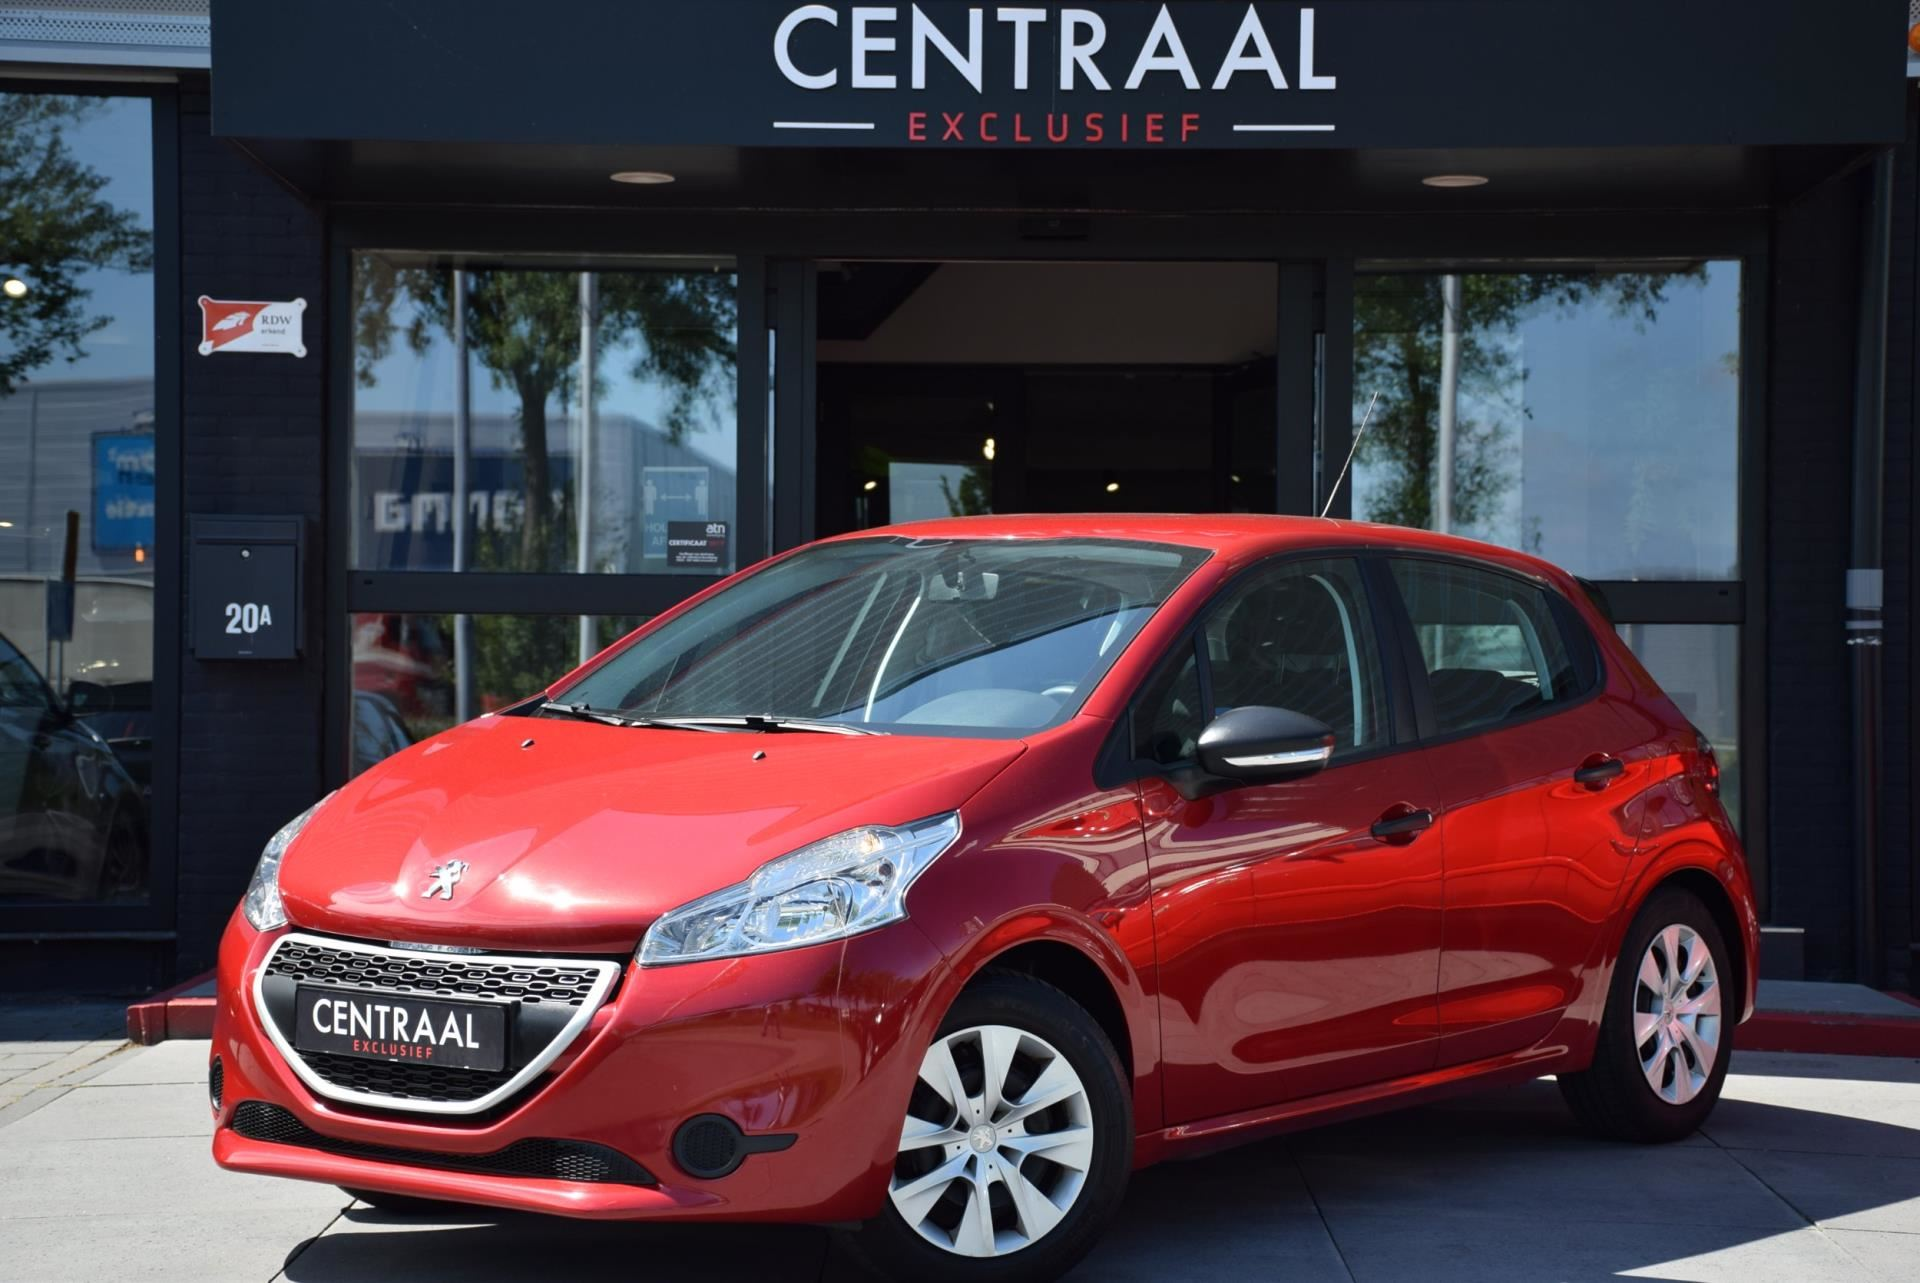 Peugeot 208 occasion - Centraal Exclusief B.V.